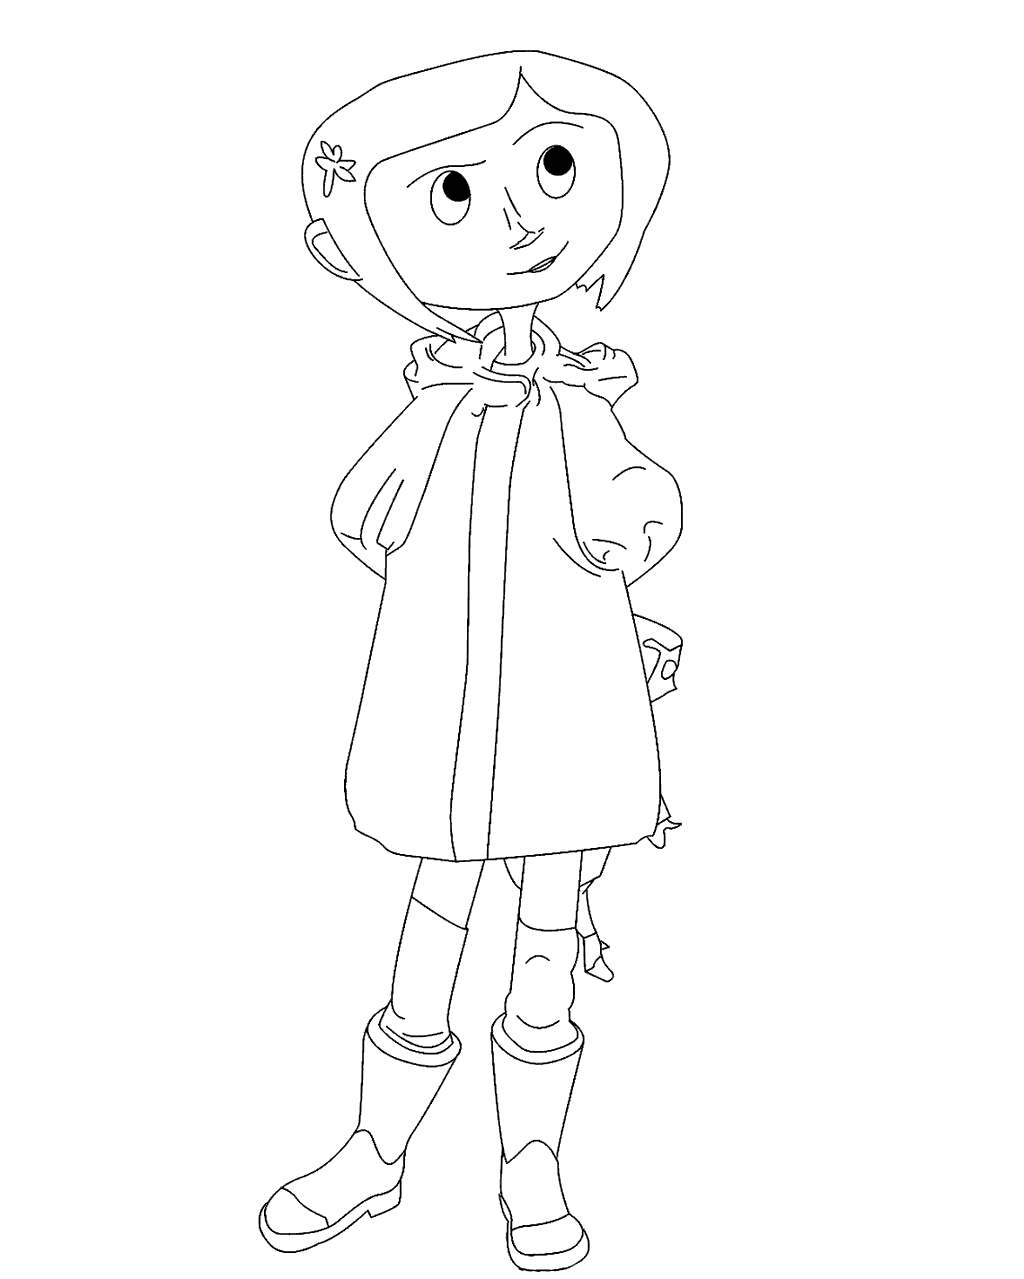 Free Printable Coraline Coloring Pages printable